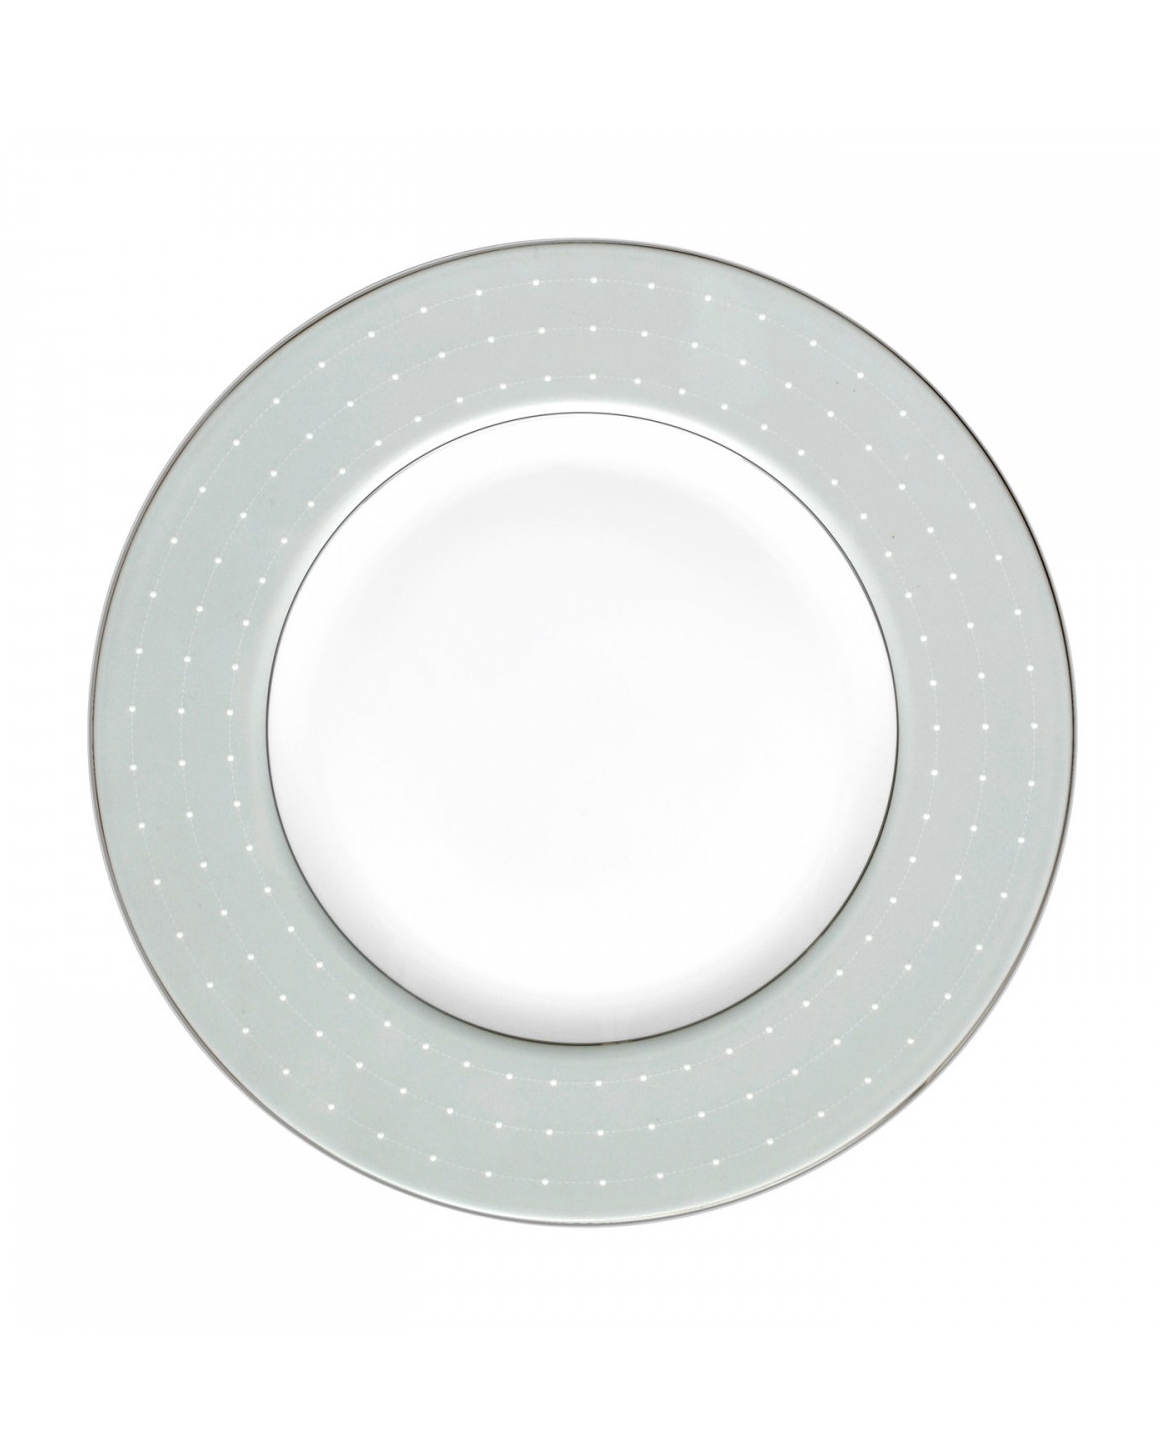 china-registry-preppy-monique-lhullier-etoile-platinum-blue-plate-1014.jpg